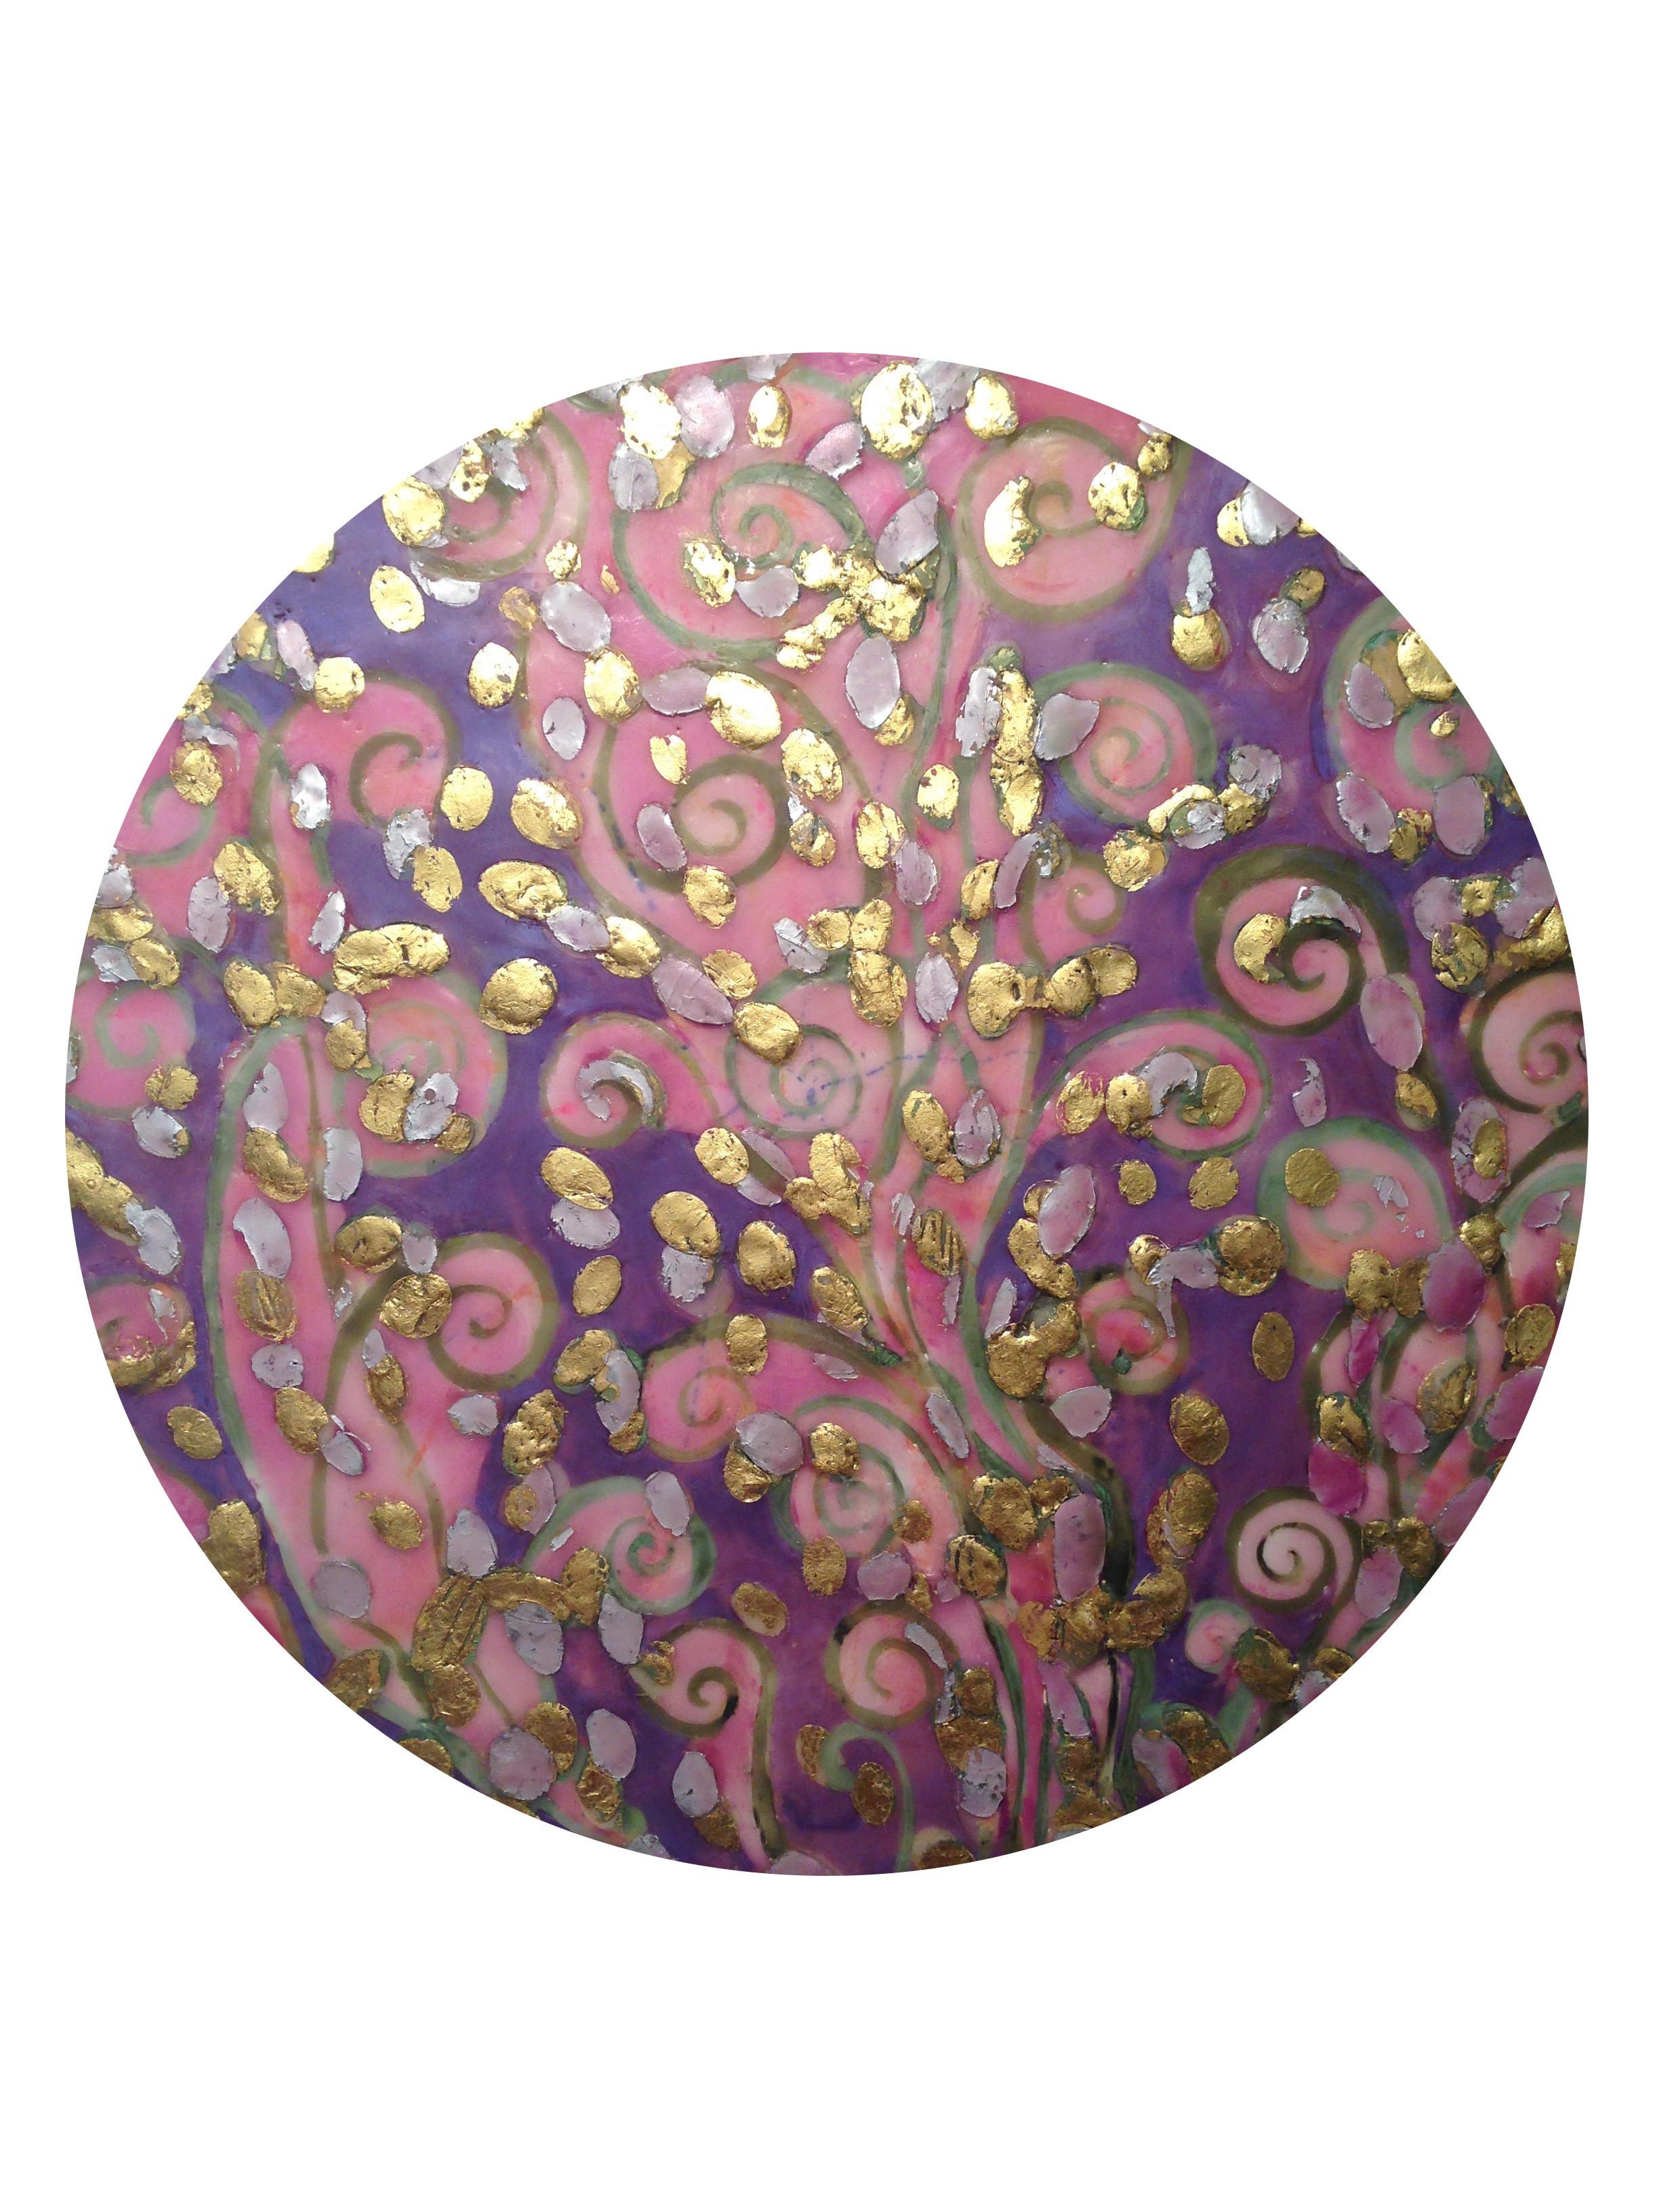 """In the Garden ,  Passion Fire  series by Maggie Simonelli Encaustic (cosmetic grade beeswax), 22 kt gold leaf, aluminum leaf,  Chanel   96 Utopia  eye shadow, pigments, casein and lotus oil on birch panel 20"""" Diameter"""